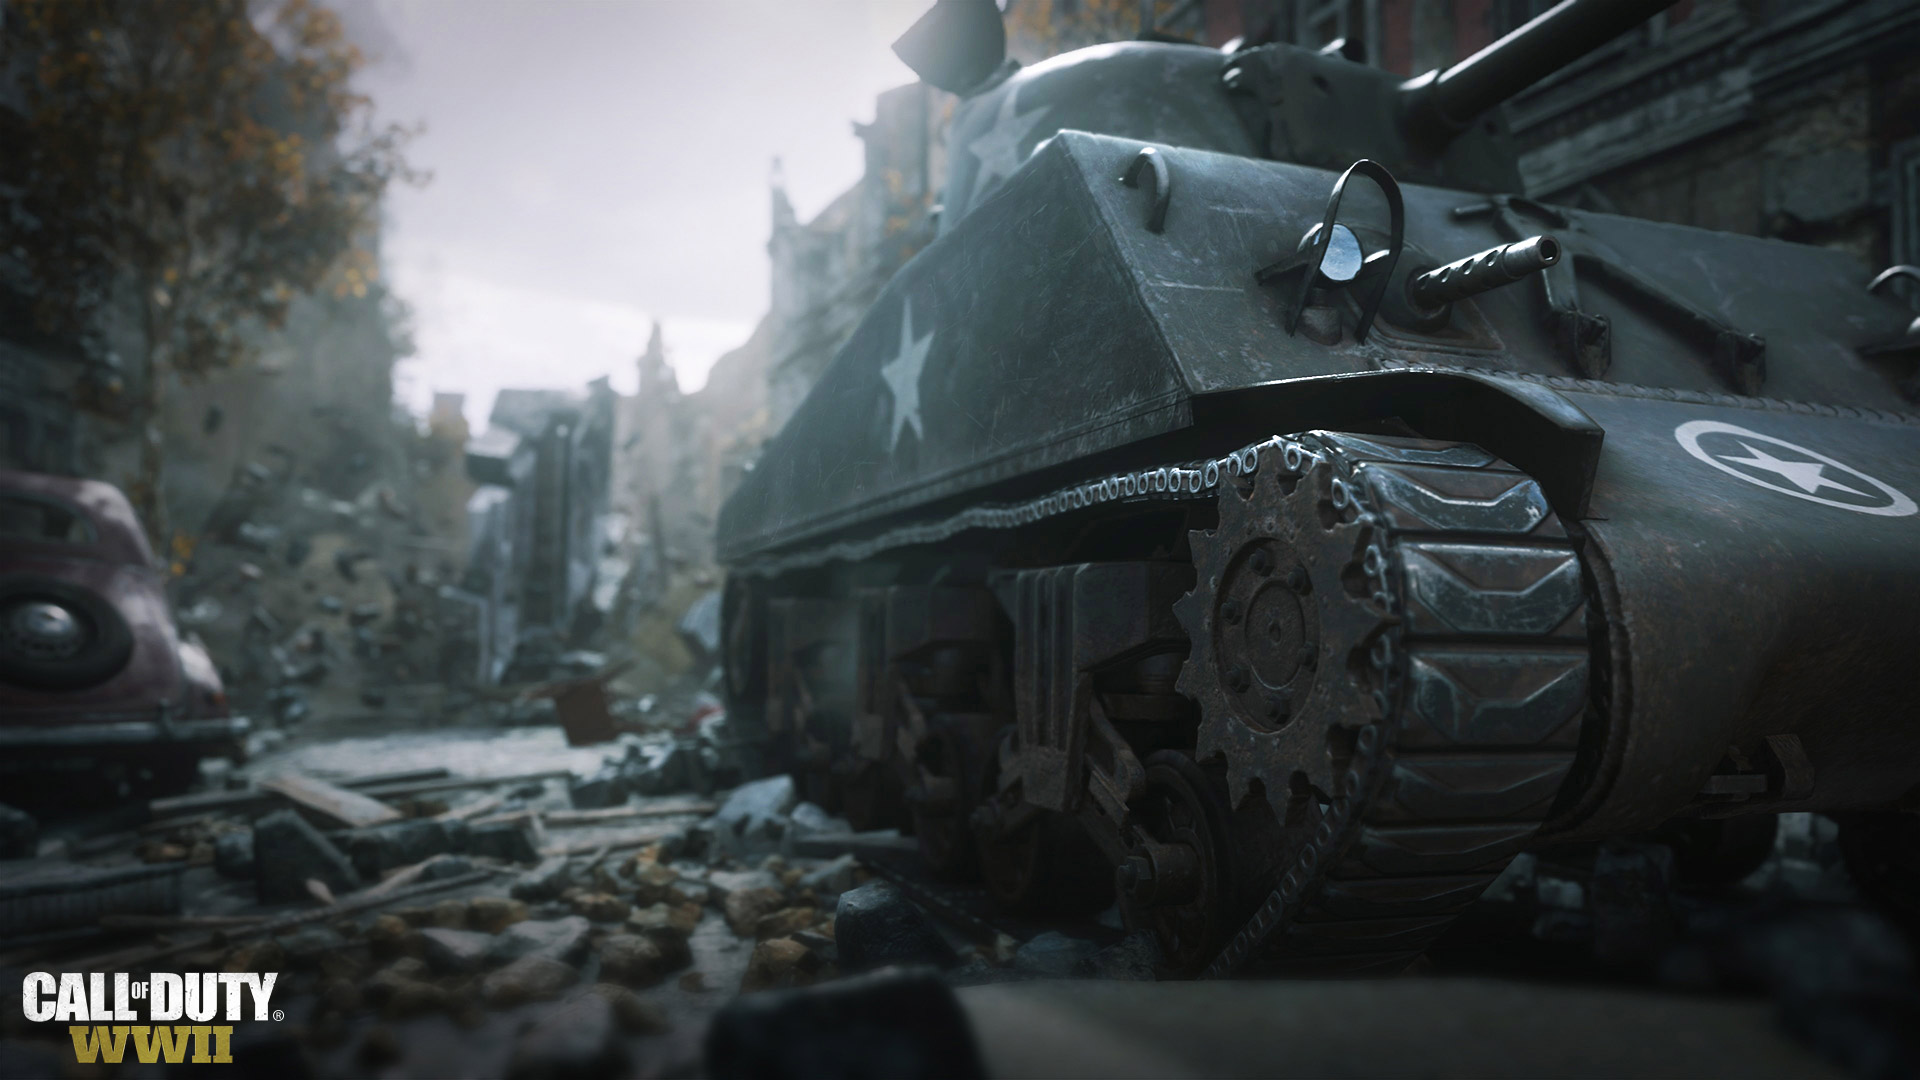 Call of Duty: WWII Wallpaper in 1920x1080